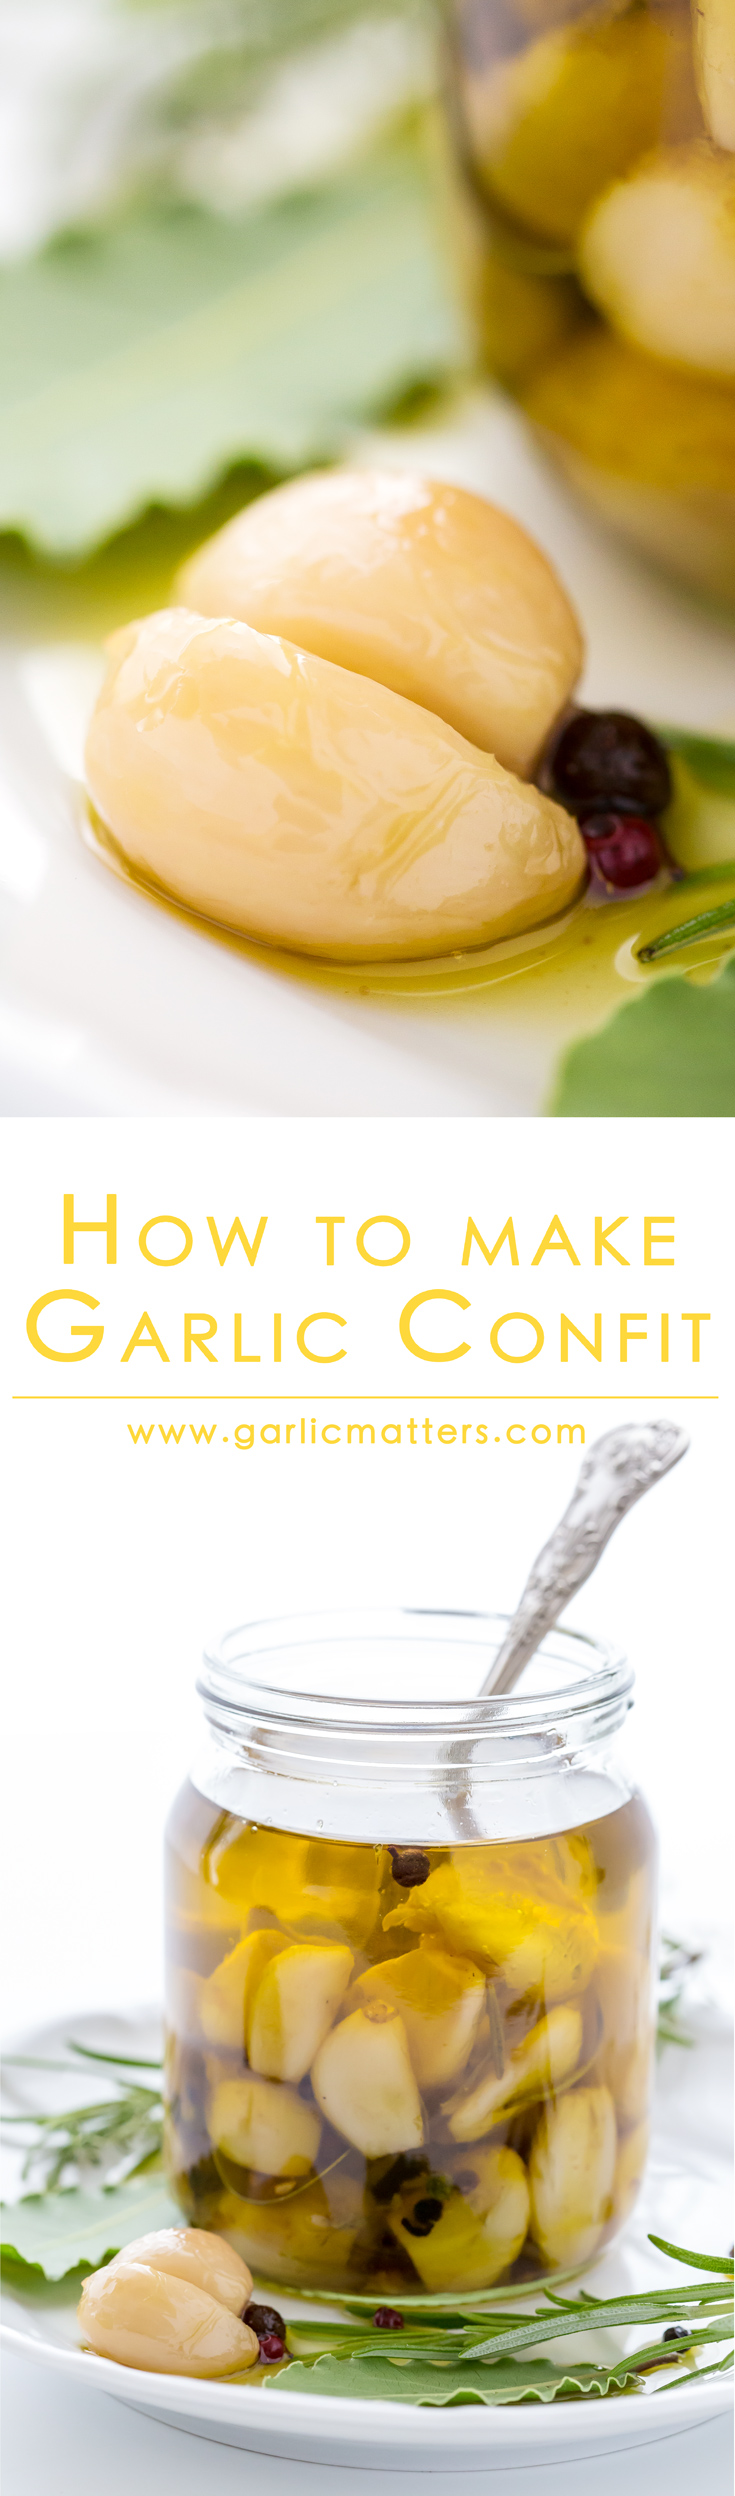 How To Make Garlic Confit - really easy guide to transforming garlic into the most flavourful, mellow cooking ingredient or a snack with an amazing garlic infused oil for your dressings. Fantastic 30 min recipe - really worth sharing!